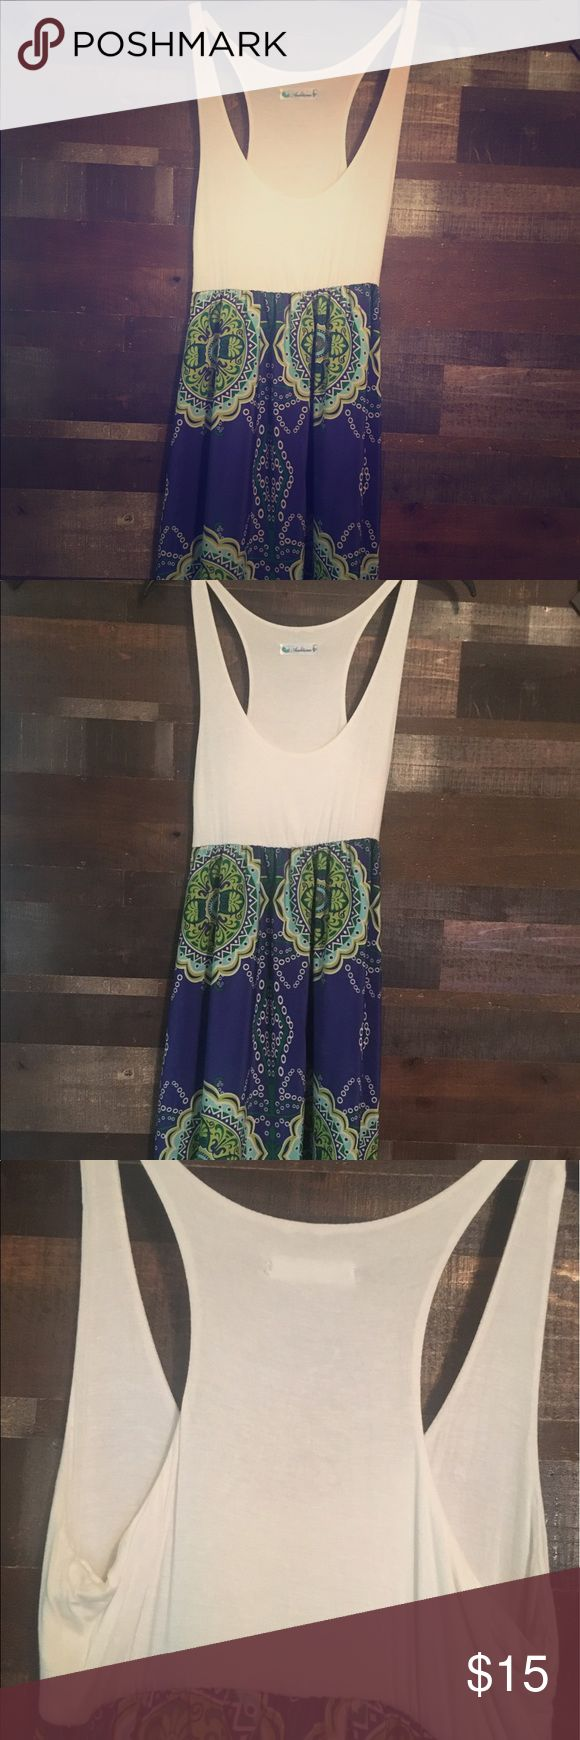 🌺 Aztec Summer Maxi Dress 👗 Flowing, gorgeous, multi-colored Maxi. Excellent Condition!  Oh-la-la! The colors in this maxi are soooo relaxing, just like the comfy fit! The soft top is solid and gives way to an AHHHmazing printed skirt that feels so cool against your skin! Definitely a nice break from any uncomfortable clothes! We think this is a great look for just about any occasion, so don't miss out on this wonderful number! True to Size! Auditions Dresses Maxi